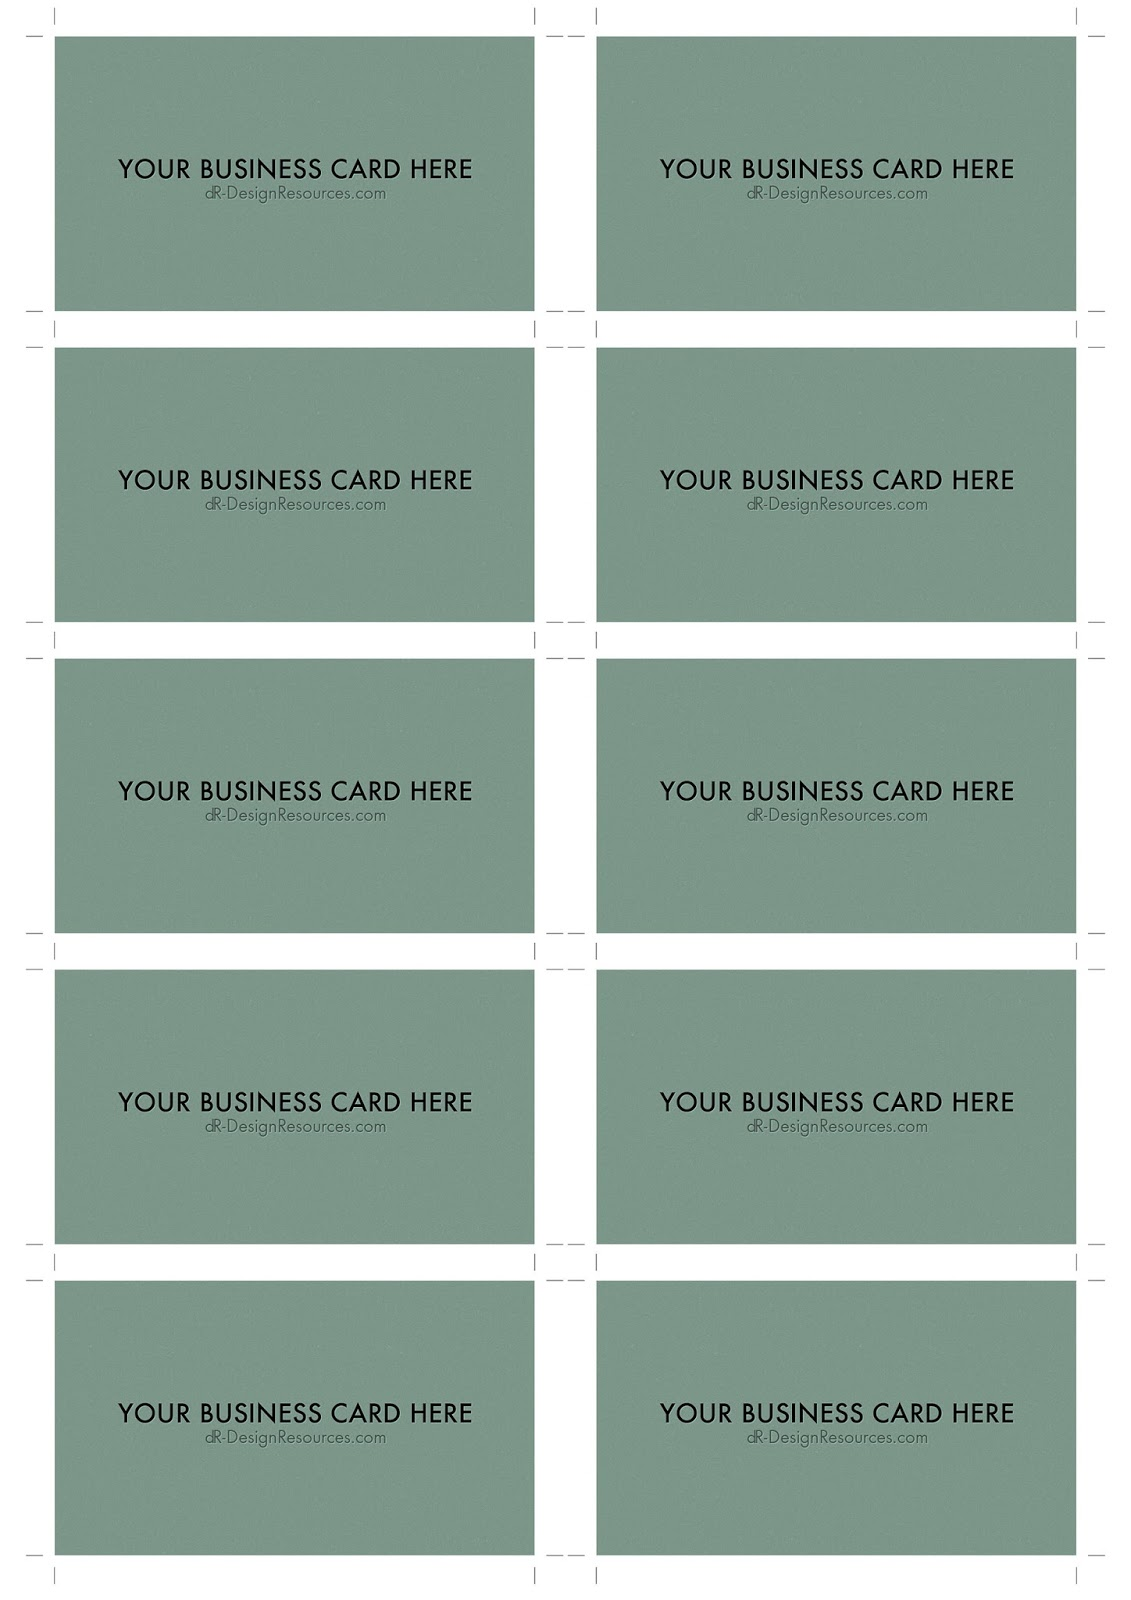 10 business card template gidiyedformapolitica 10 business card template wajeb Gallery